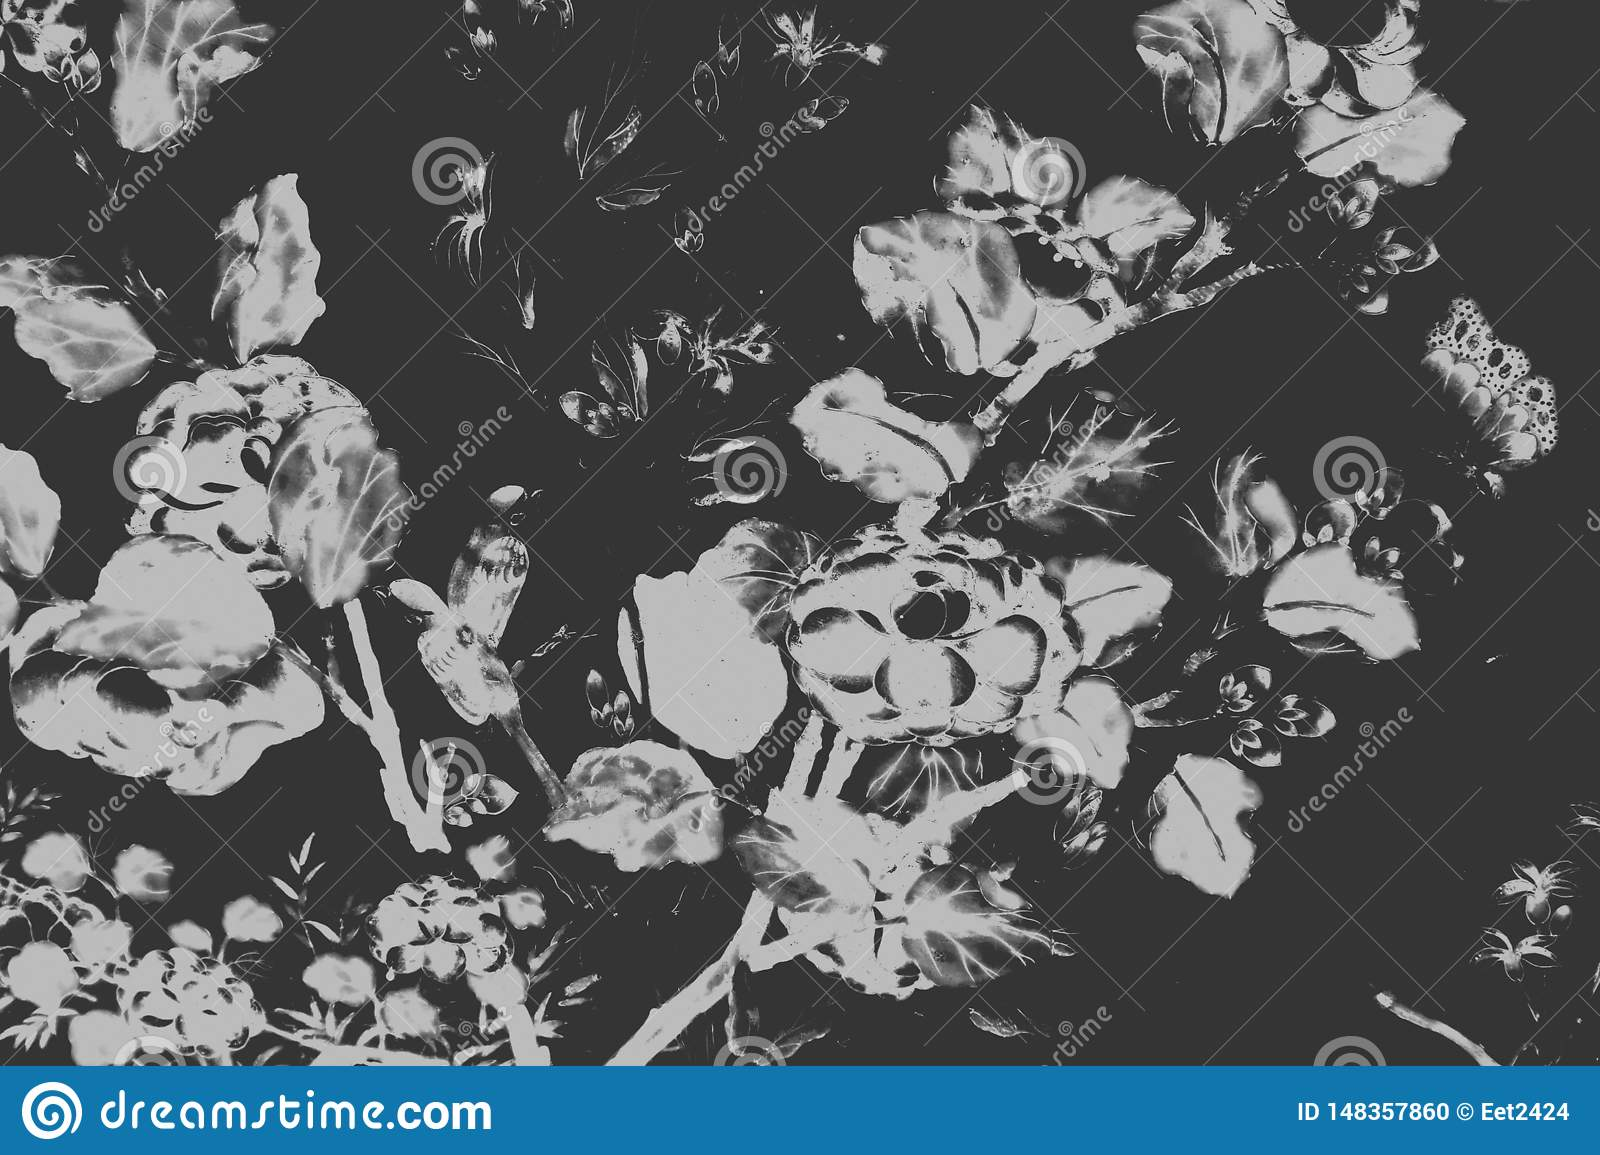 Beautiful tree bird and flowers art paintings color white and black  illustration pattern background and wallpaper